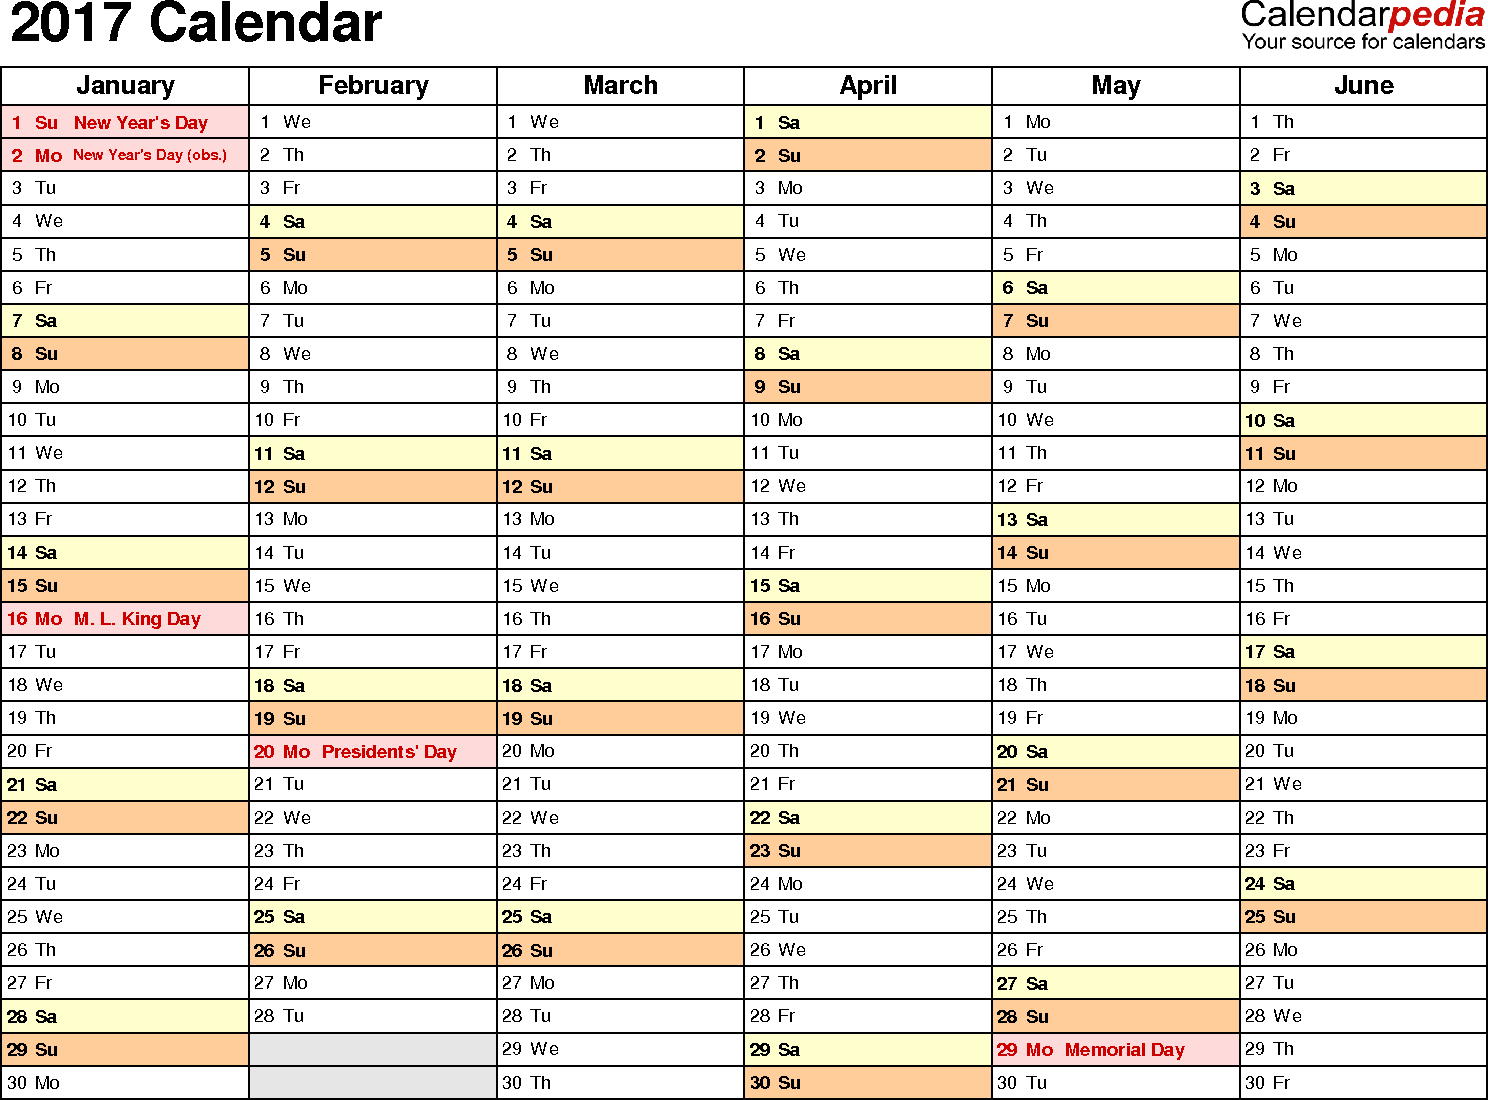 Ediblewildsus  Remarkable  Calendar  Download  Free Printable Excel Templates Xls With Interesting Template   Calendar For Excel Months Horizontally  Pages Landscape Orientation With Alluring Pdf A Excel Also Charts In Excel  In Addition Excel Phone Number Format And Find Percentage In Excel As Well As Julian Date Excel Additionally Excel Medical Center From Calendarpediacom With Ediblewildsus  Interesting  Calendar  Download  Free Printable Excel Templates Xls With Alluring Template   Calendar For Excel Months Horizontally  Pages Landscape Orientation And Remarkable Pdf A Excel Also Charts In Excel  In Addition Excel Phone Number Format From Calendarpediacom